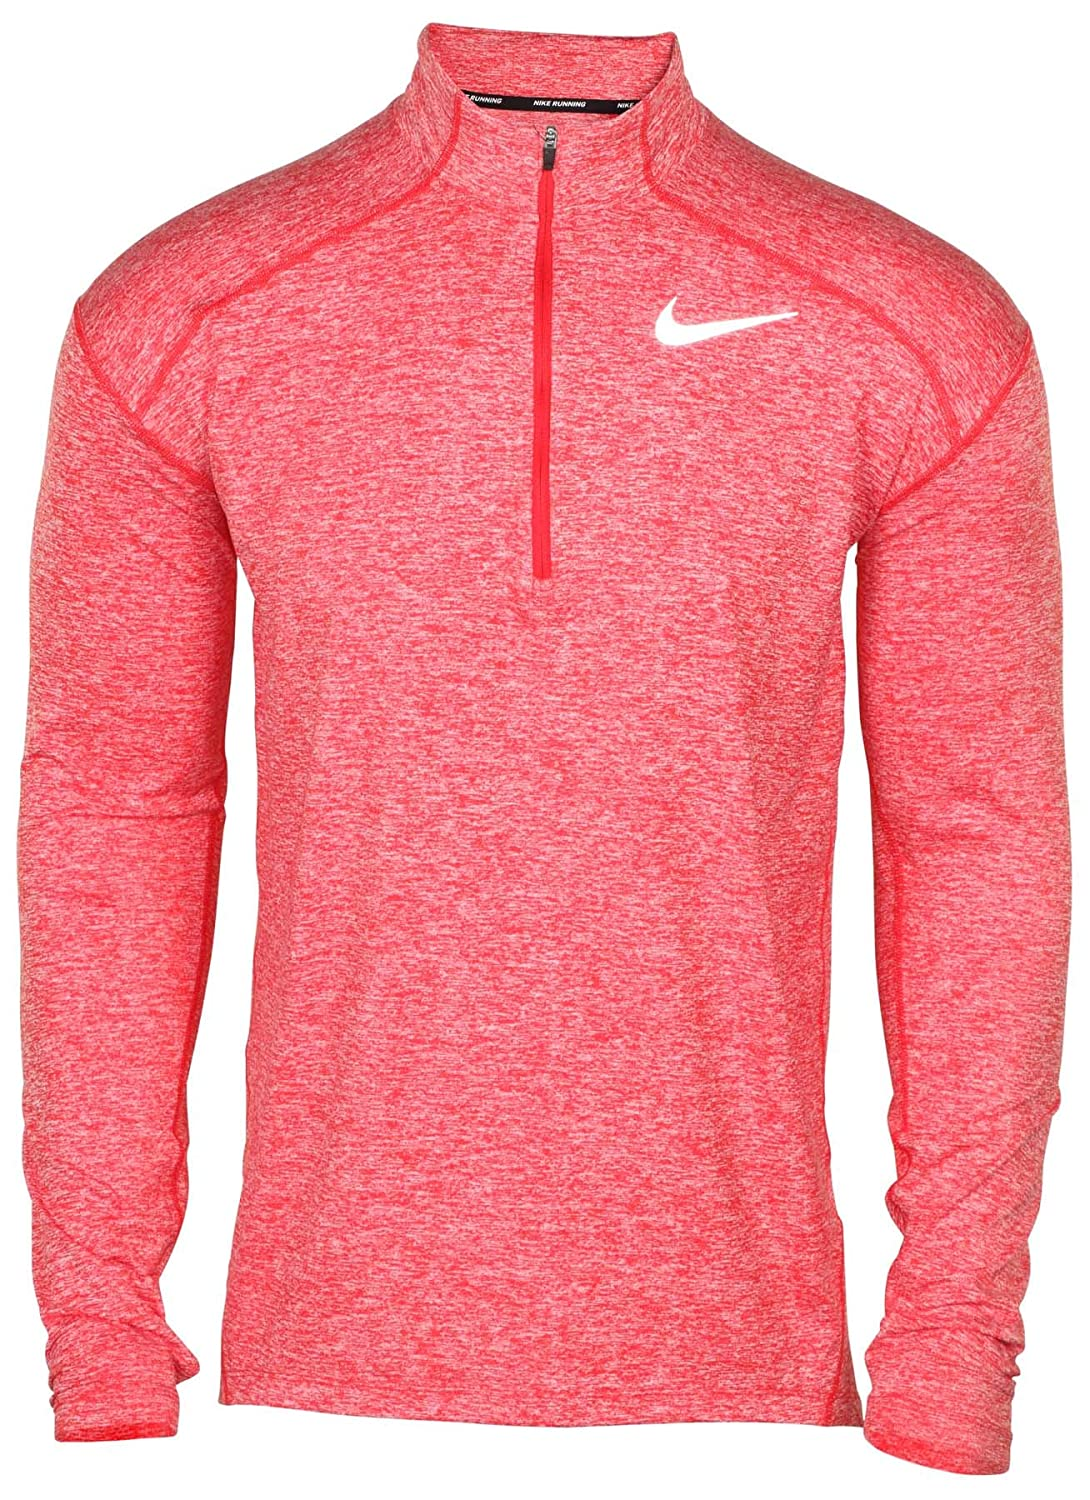 : Nike Men's Element Dri Fit Half Zip Running